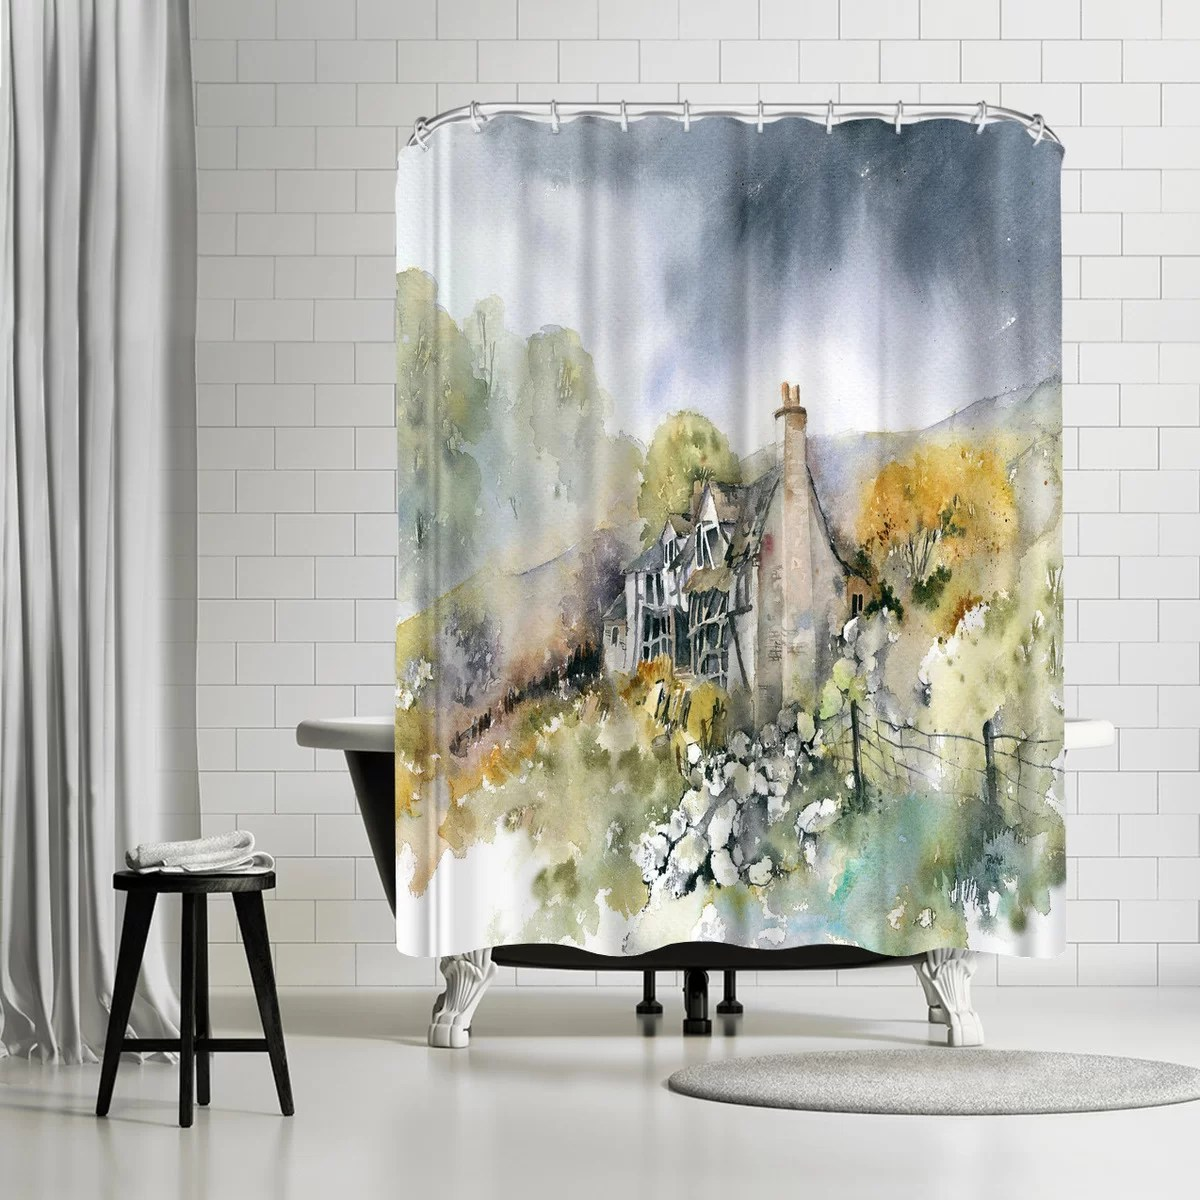 Cottage Shower Curtain Rachel Mcnaughton Ruined Cottage Single Shower Curtain